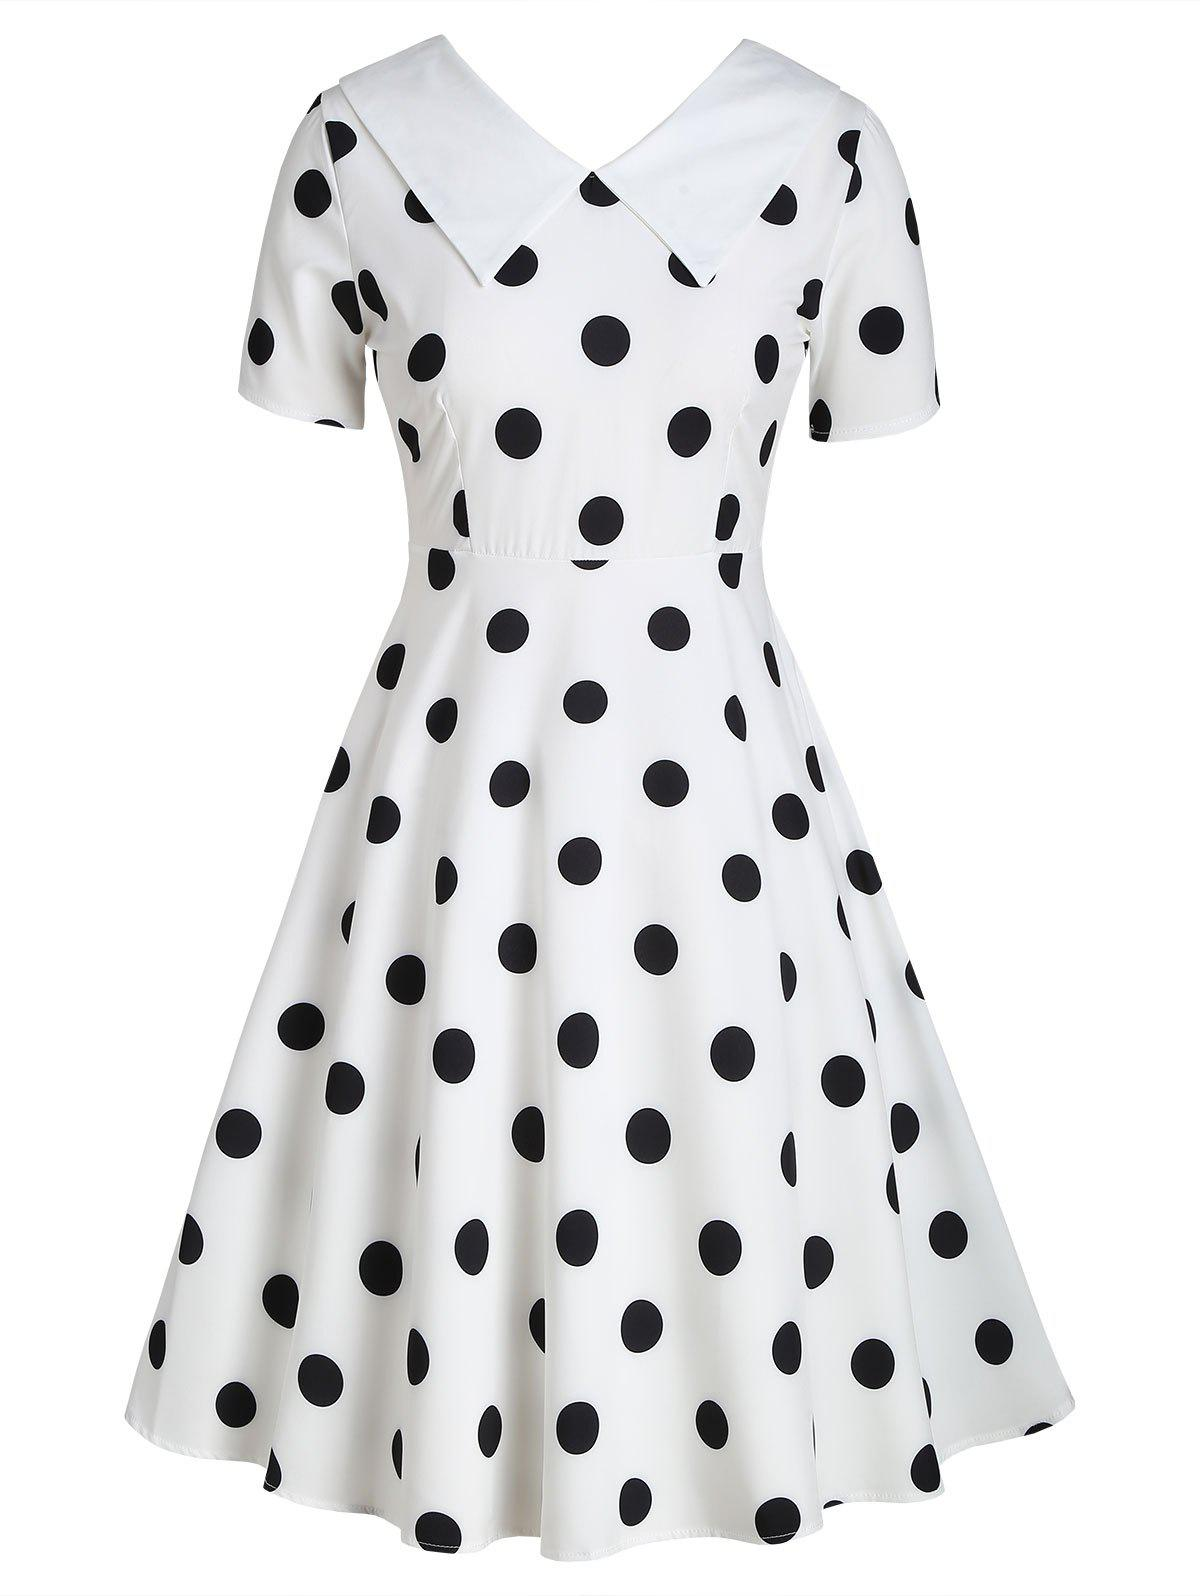 Trendy Flat Collar Polka Dot Fit and Flare Vintage Dress